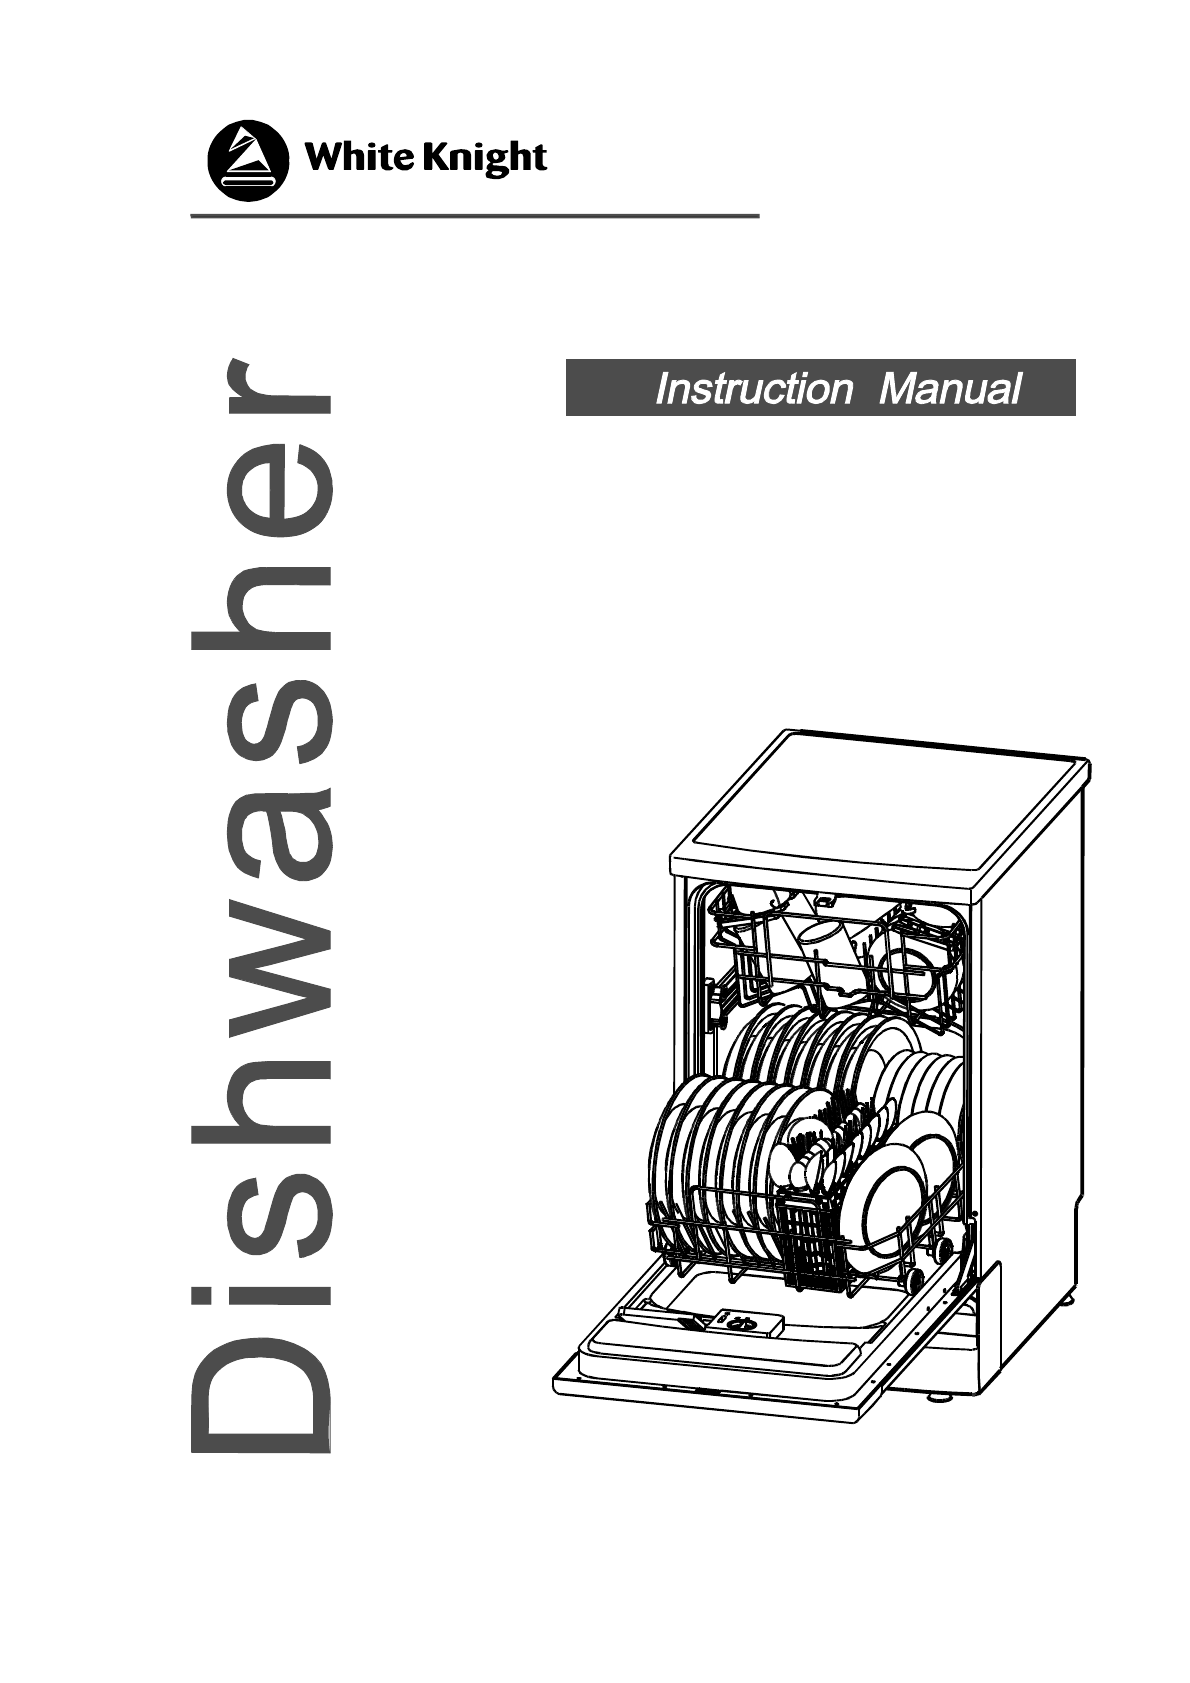 User manual White Knight DW0945WA (25 pages)